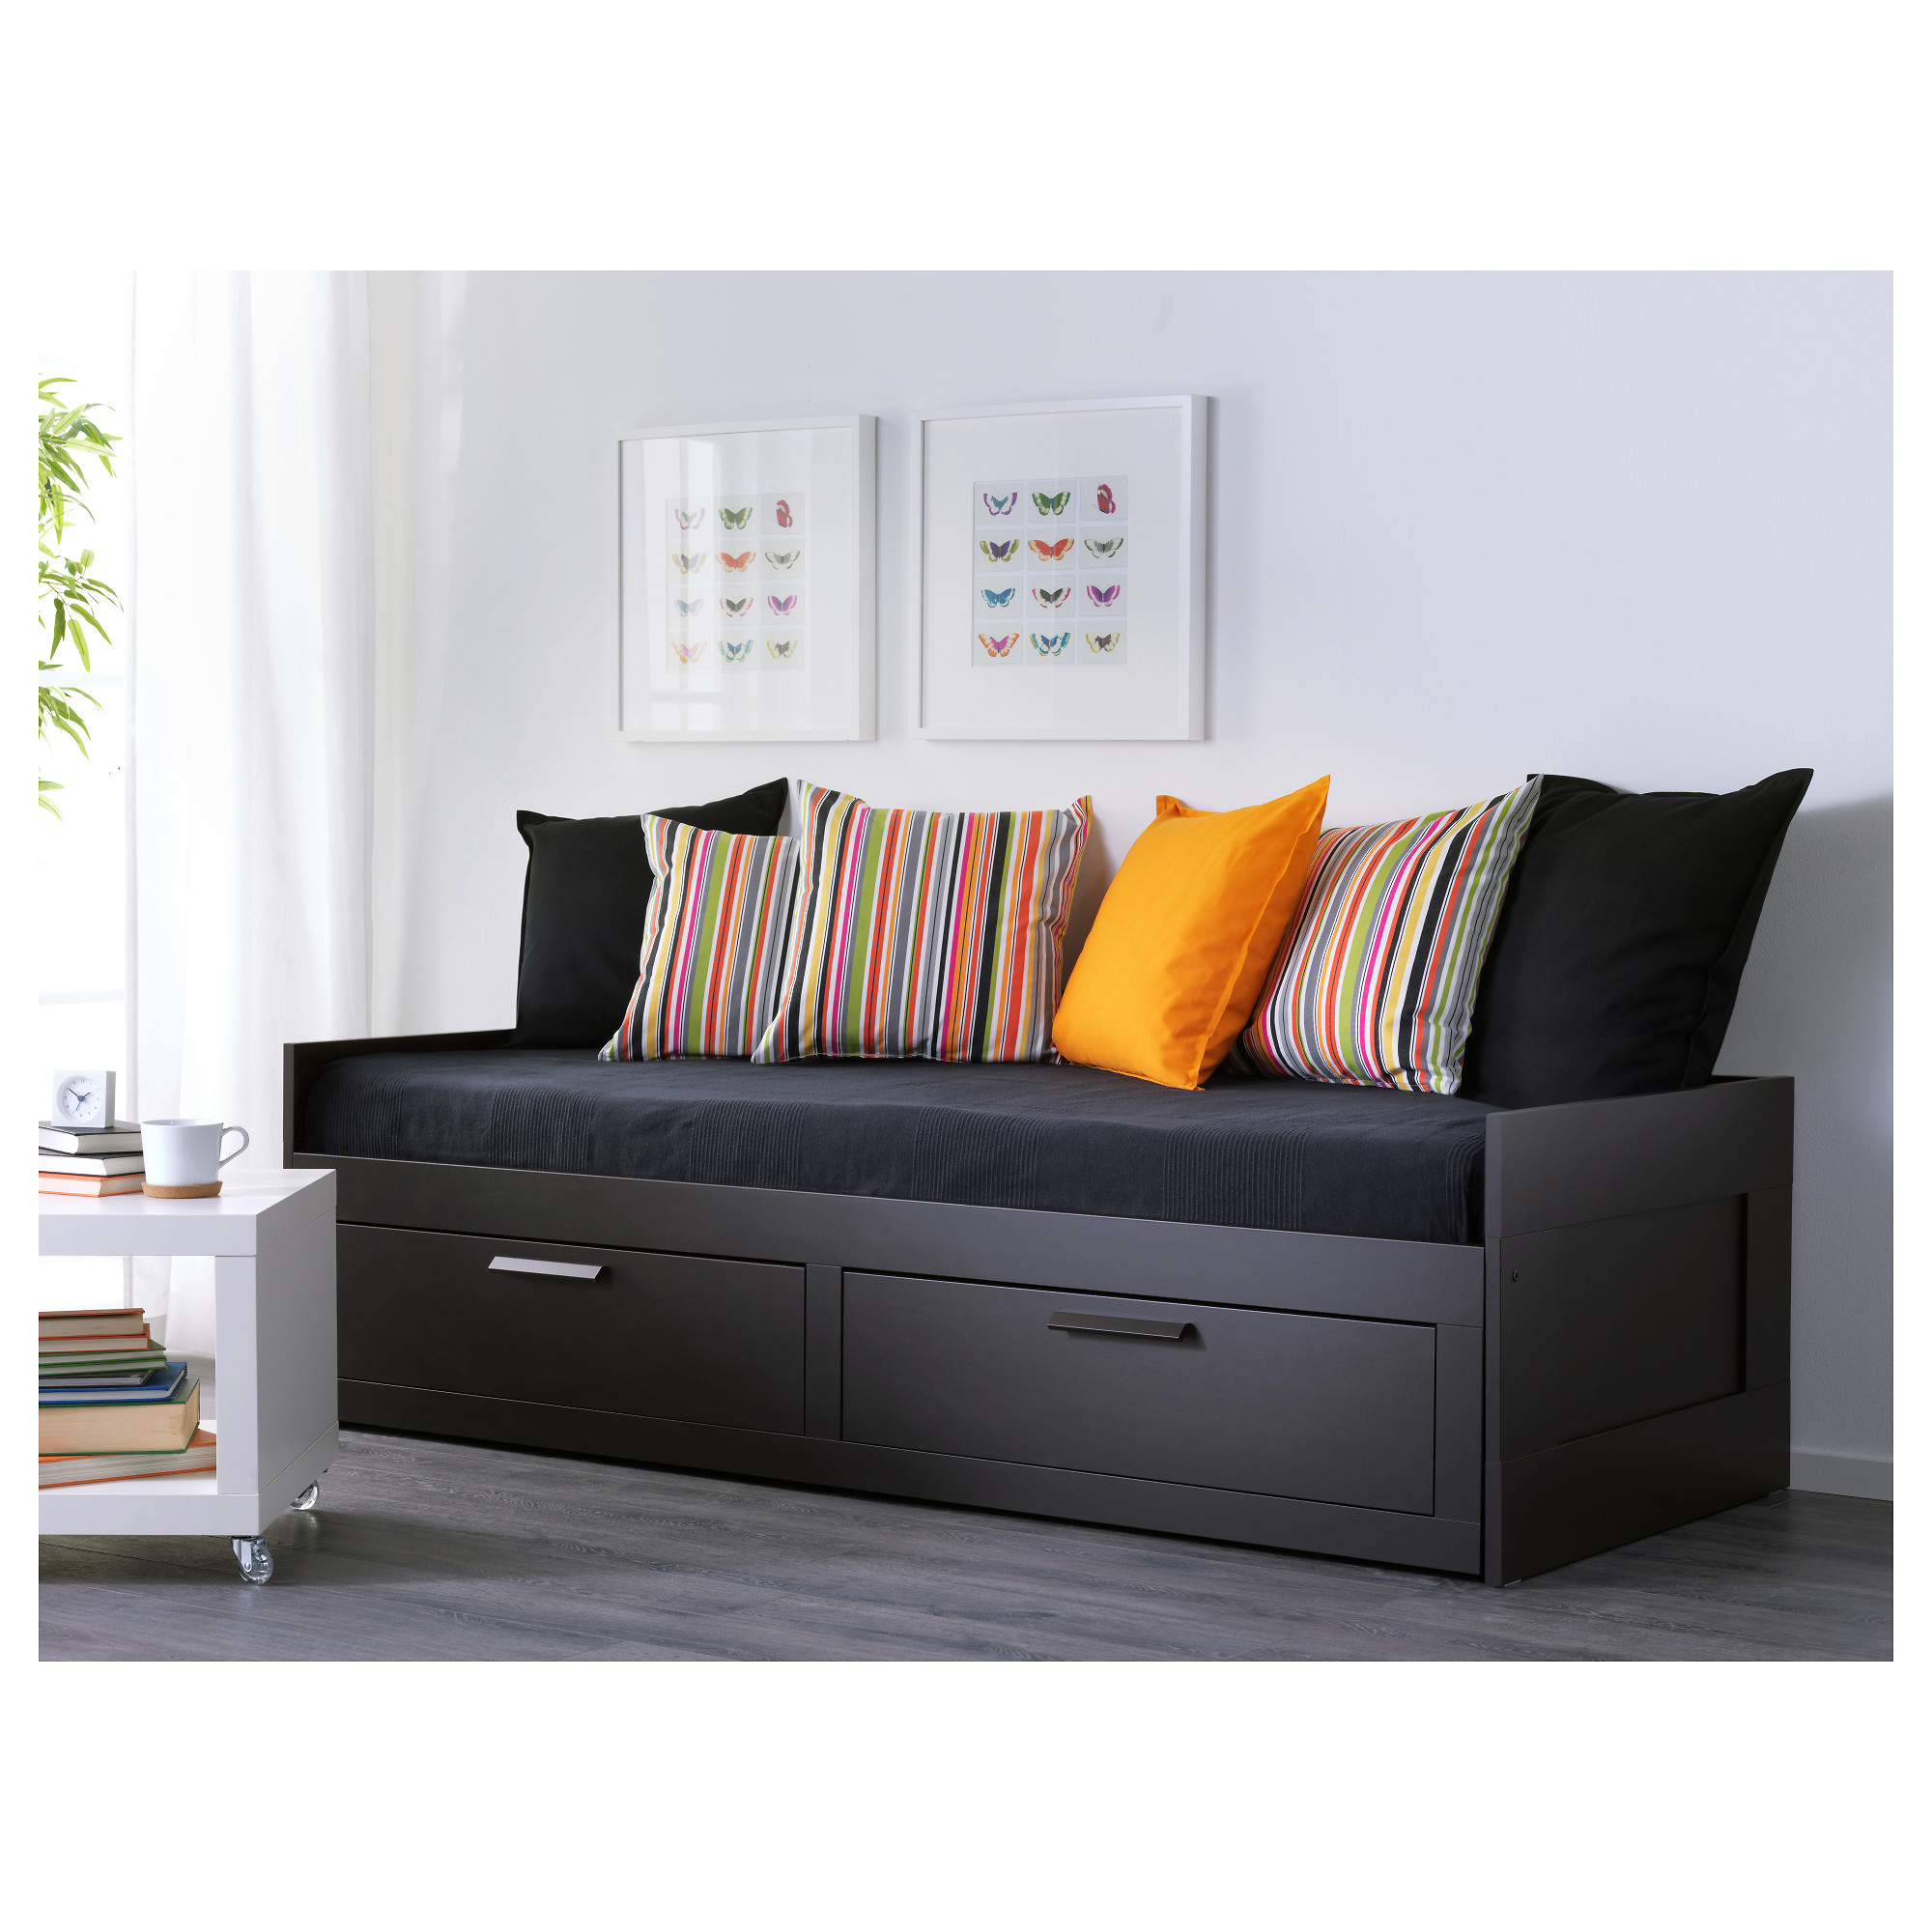 Gorgeous brimnes daybed for small bedroom ideas with ikea brimnes daybed